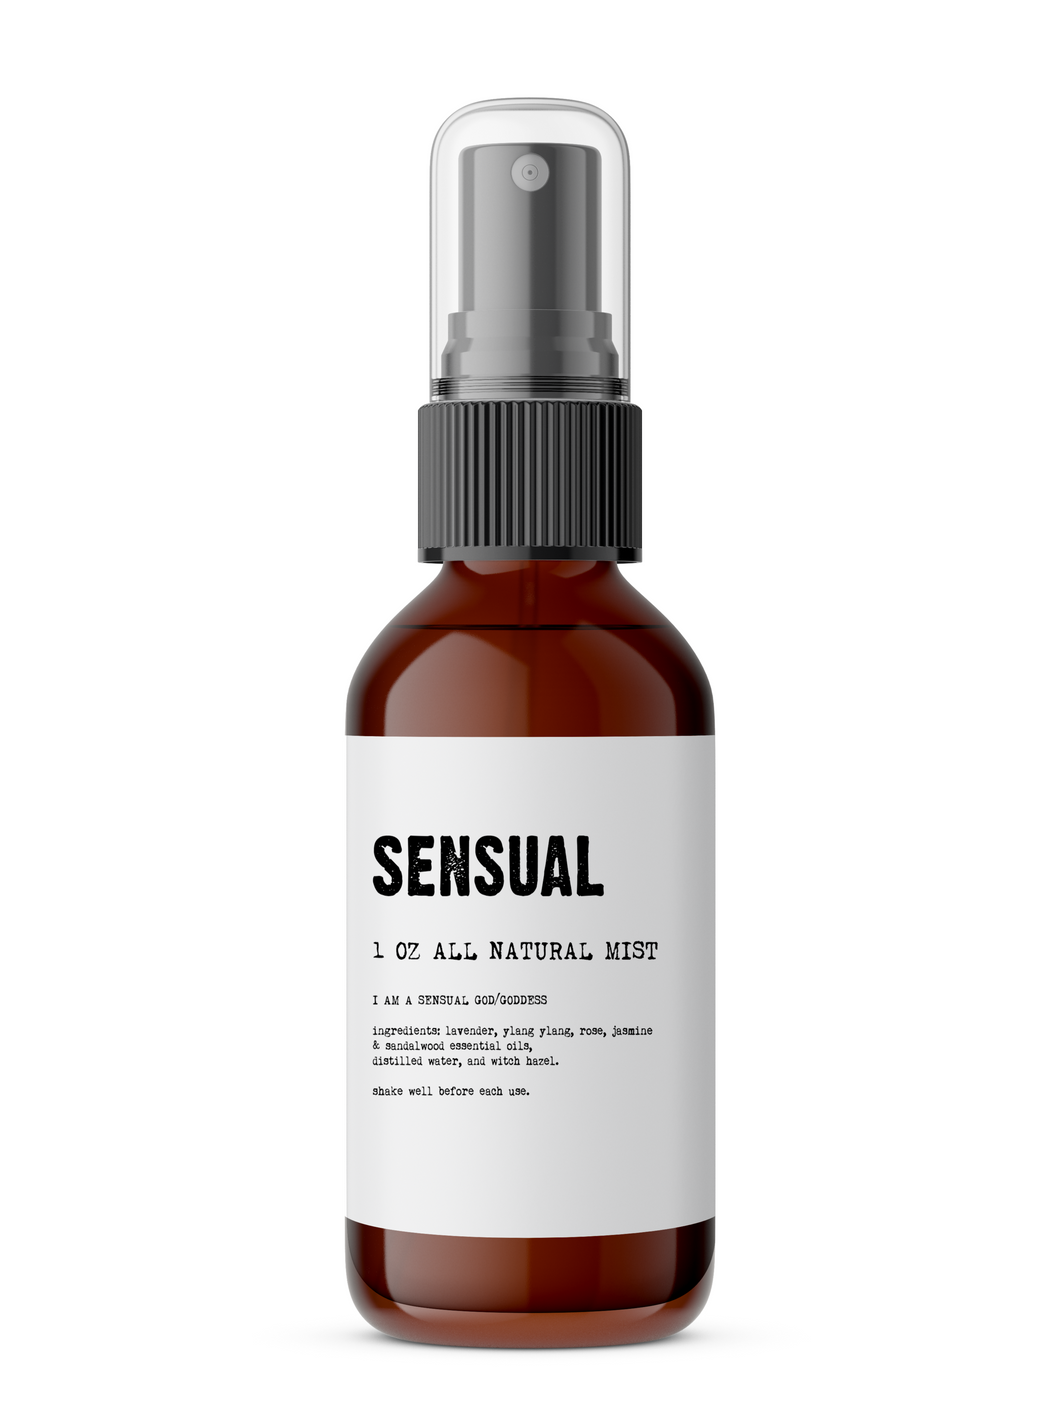 Sensual - Meditation/Body Mist - All Natural